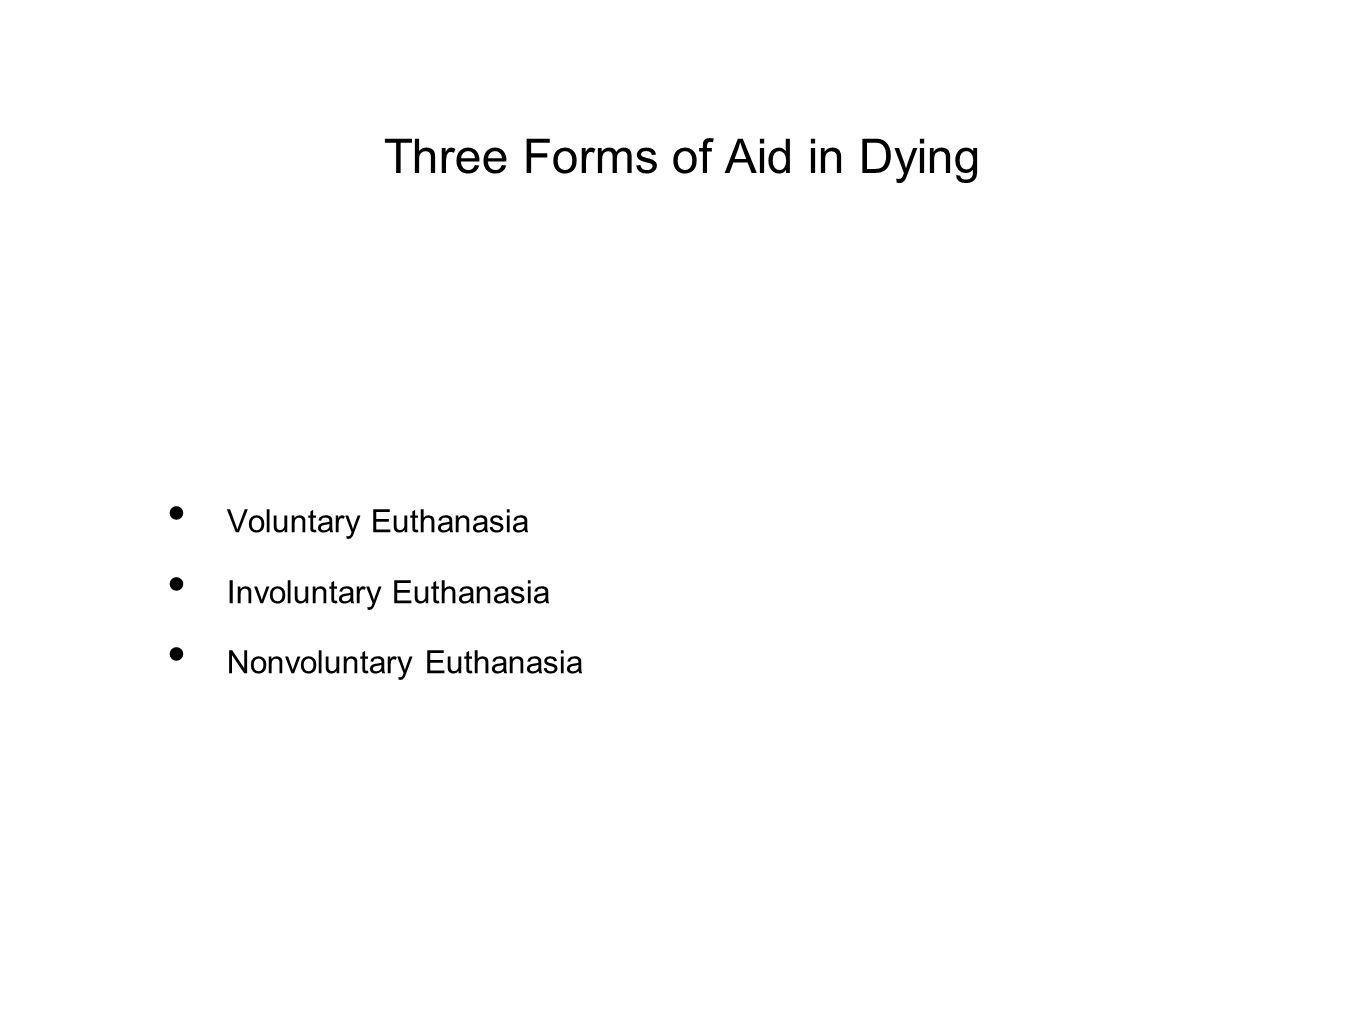 Three Forms of Aid in Dying Voluntary Euthanasia Involuntary Euthanasia Nonvoluntary Euthanasia